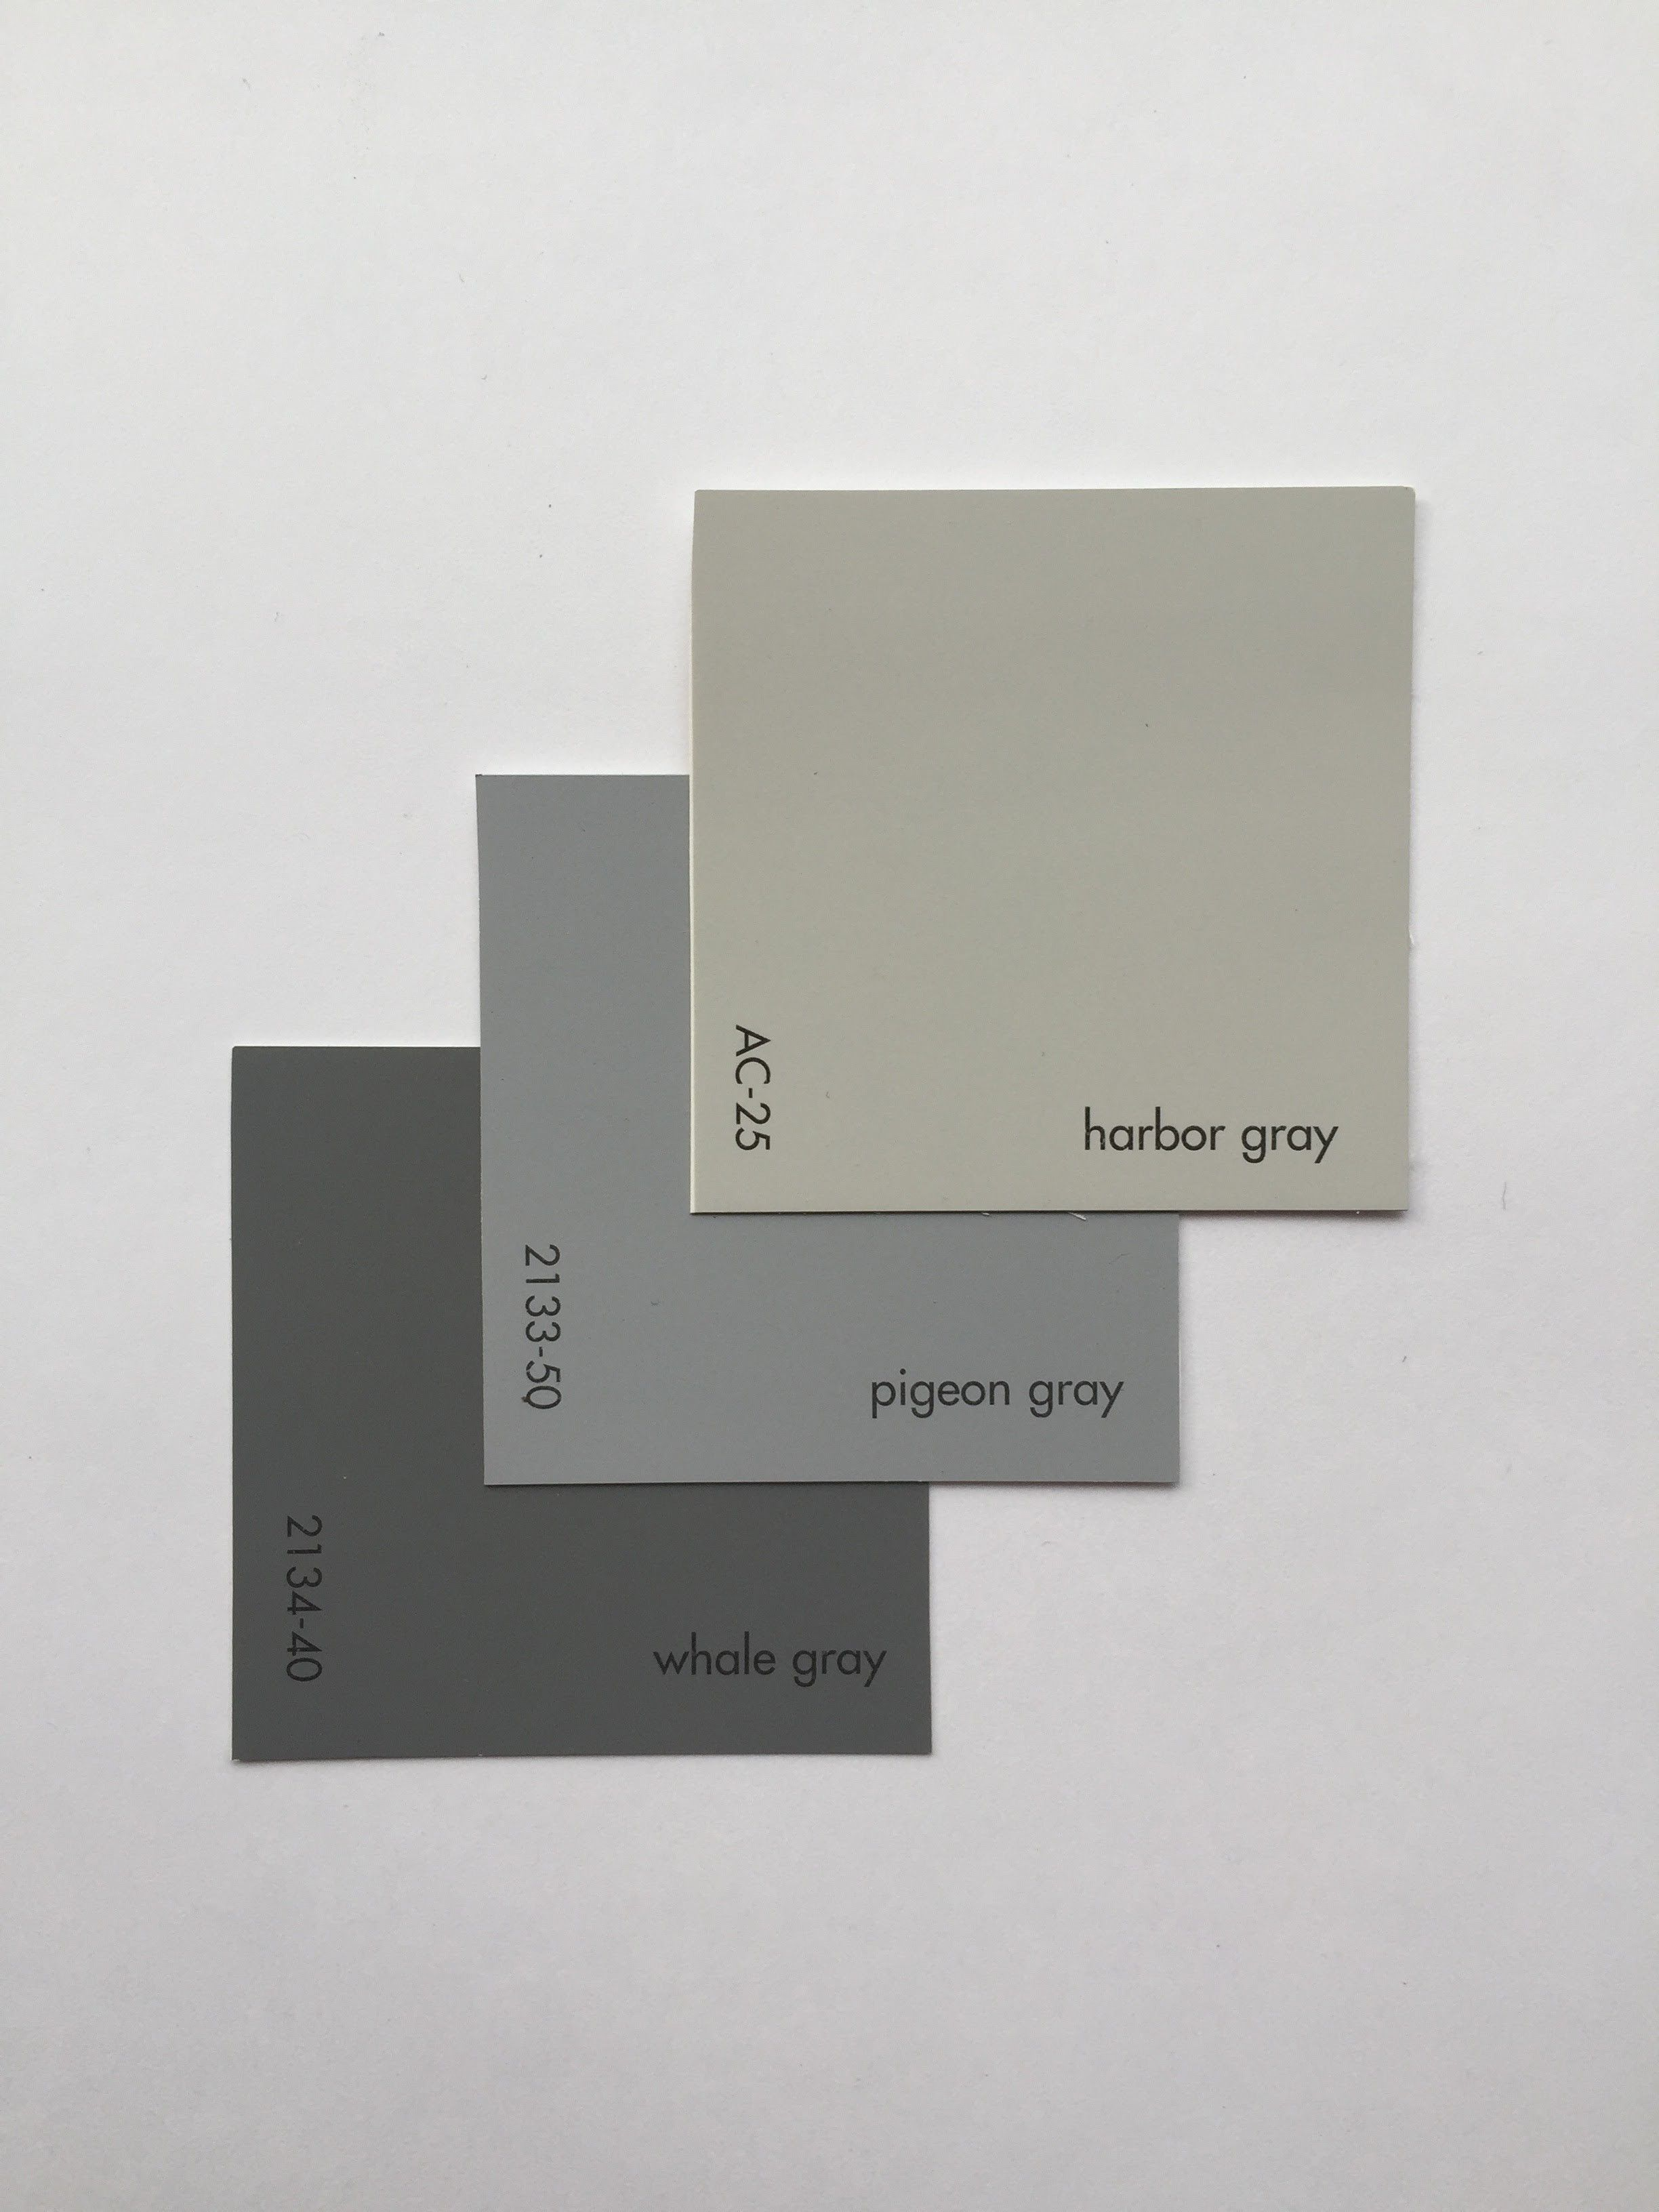 HARBOR GRAY AC 25 PIGEON GRAY 2133 50 WHALE GRAY 2134 40